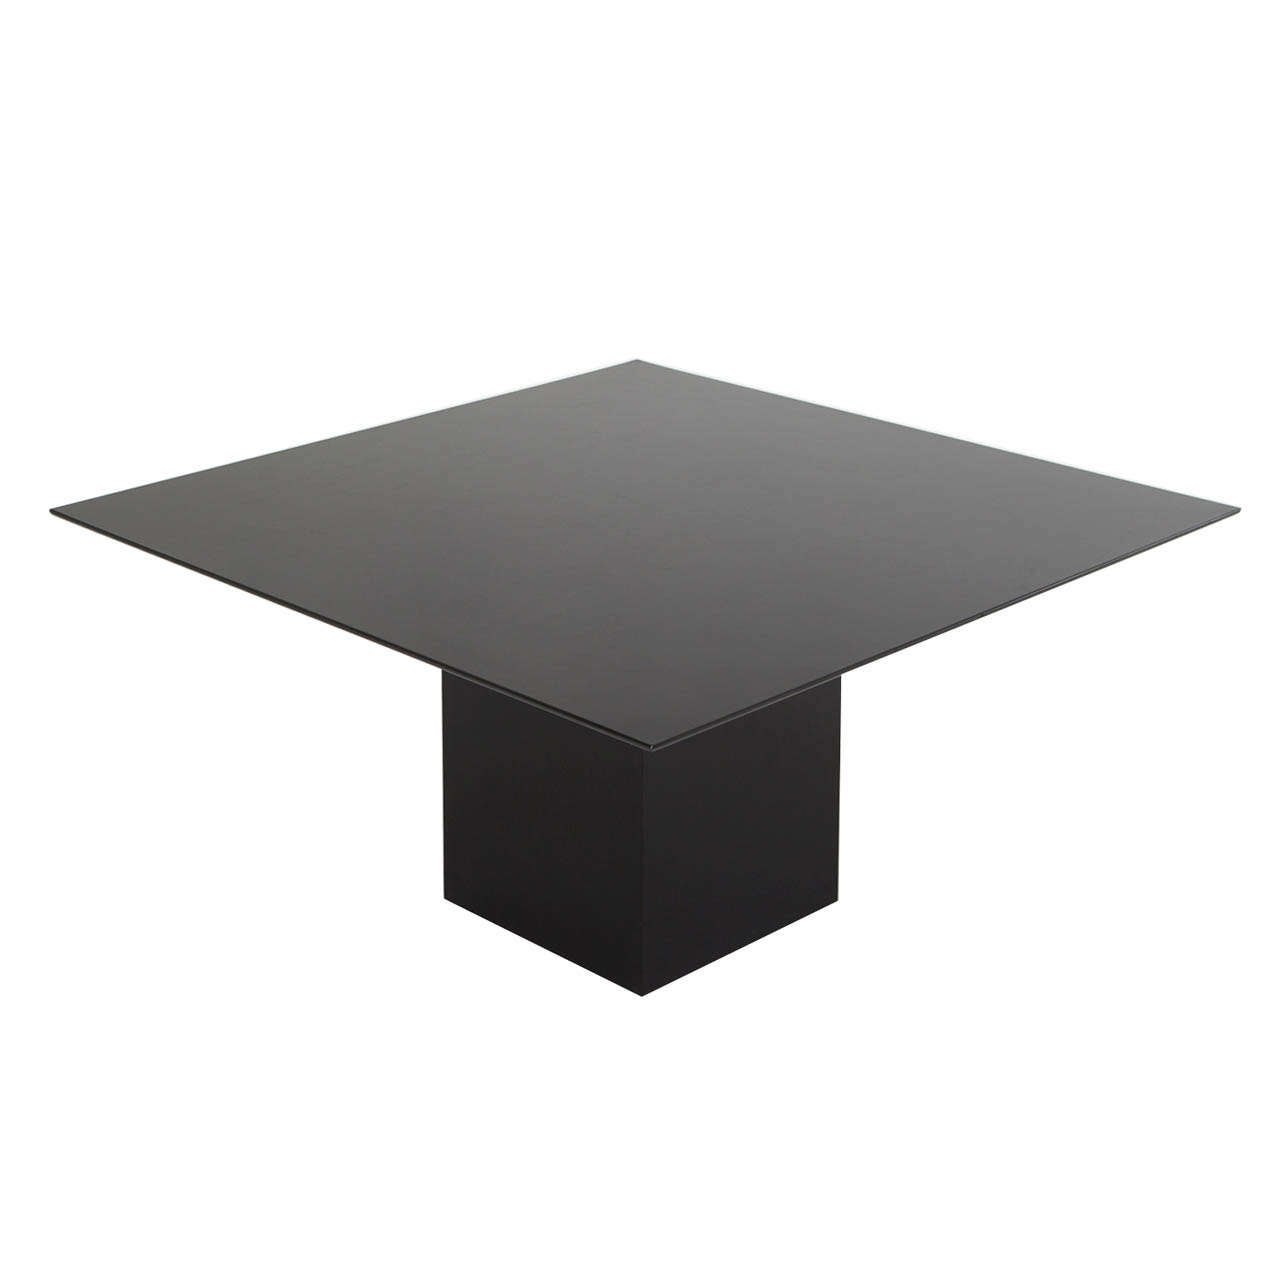 Wonderful Black Lacquered Square Rosenthal Pedestal Table 1